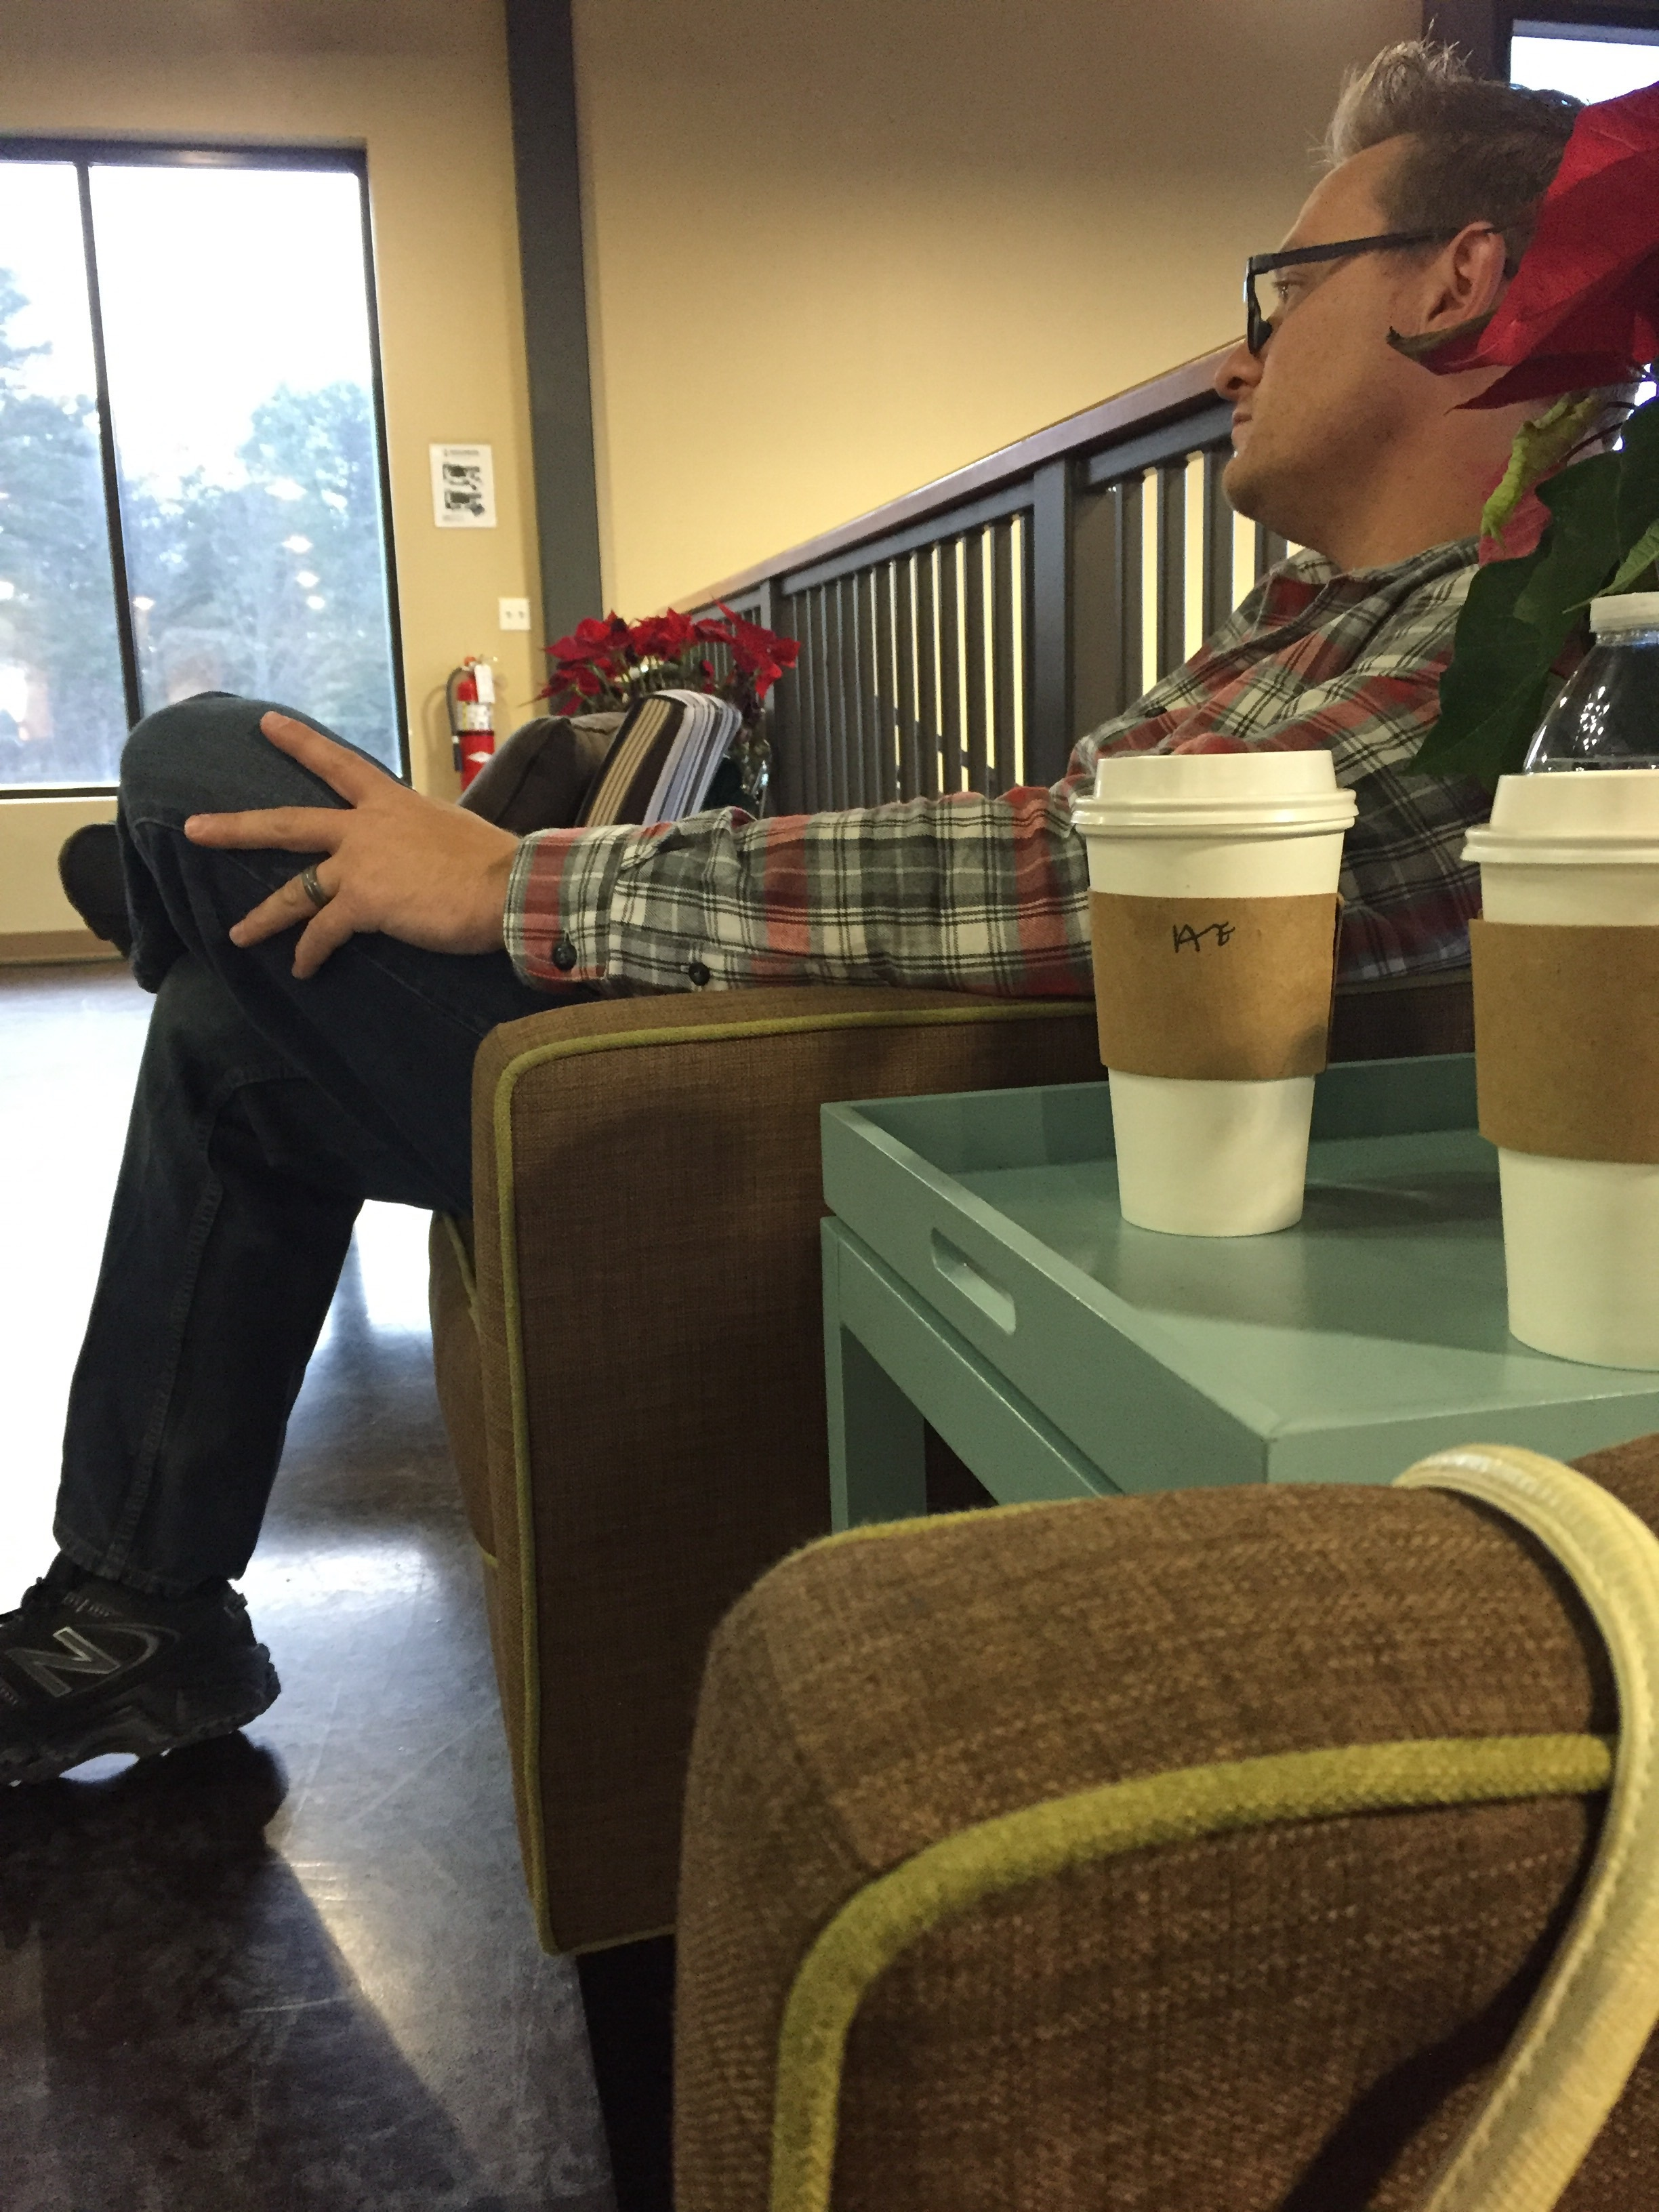 When you bring me a white mocha and sit next to me at church in the loft.